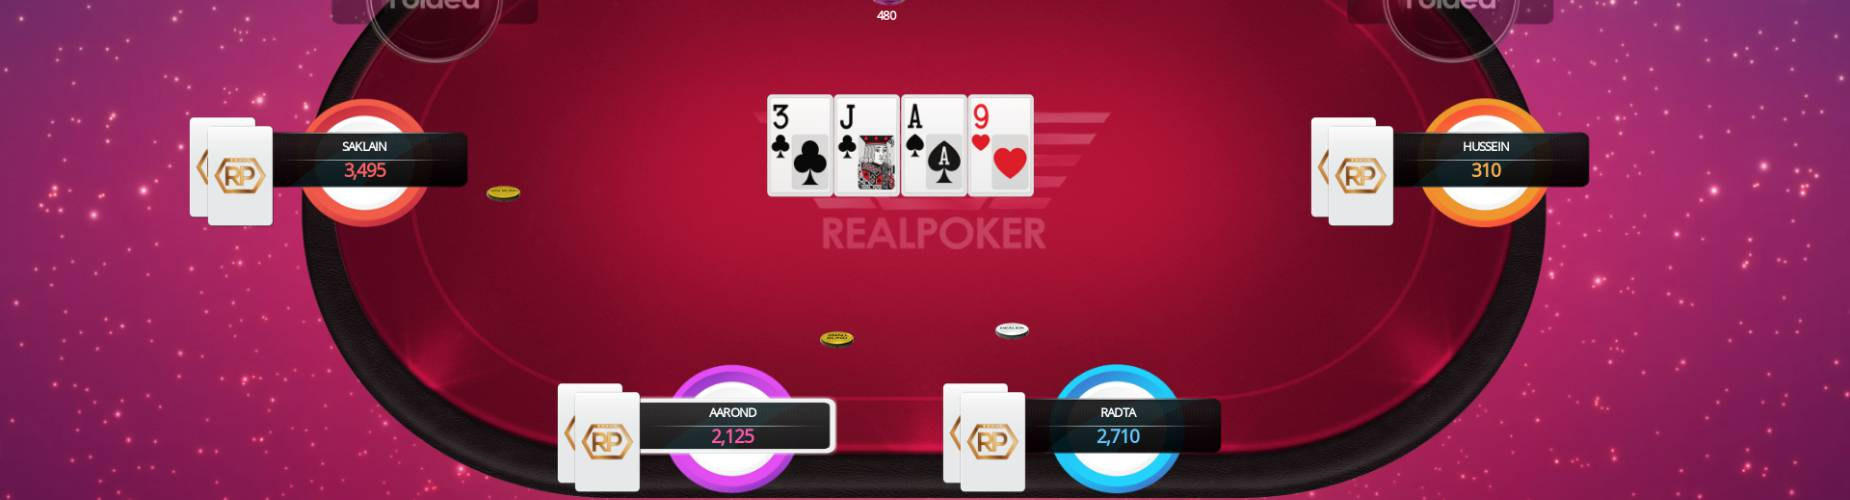 How to use online poker as a stress reliever